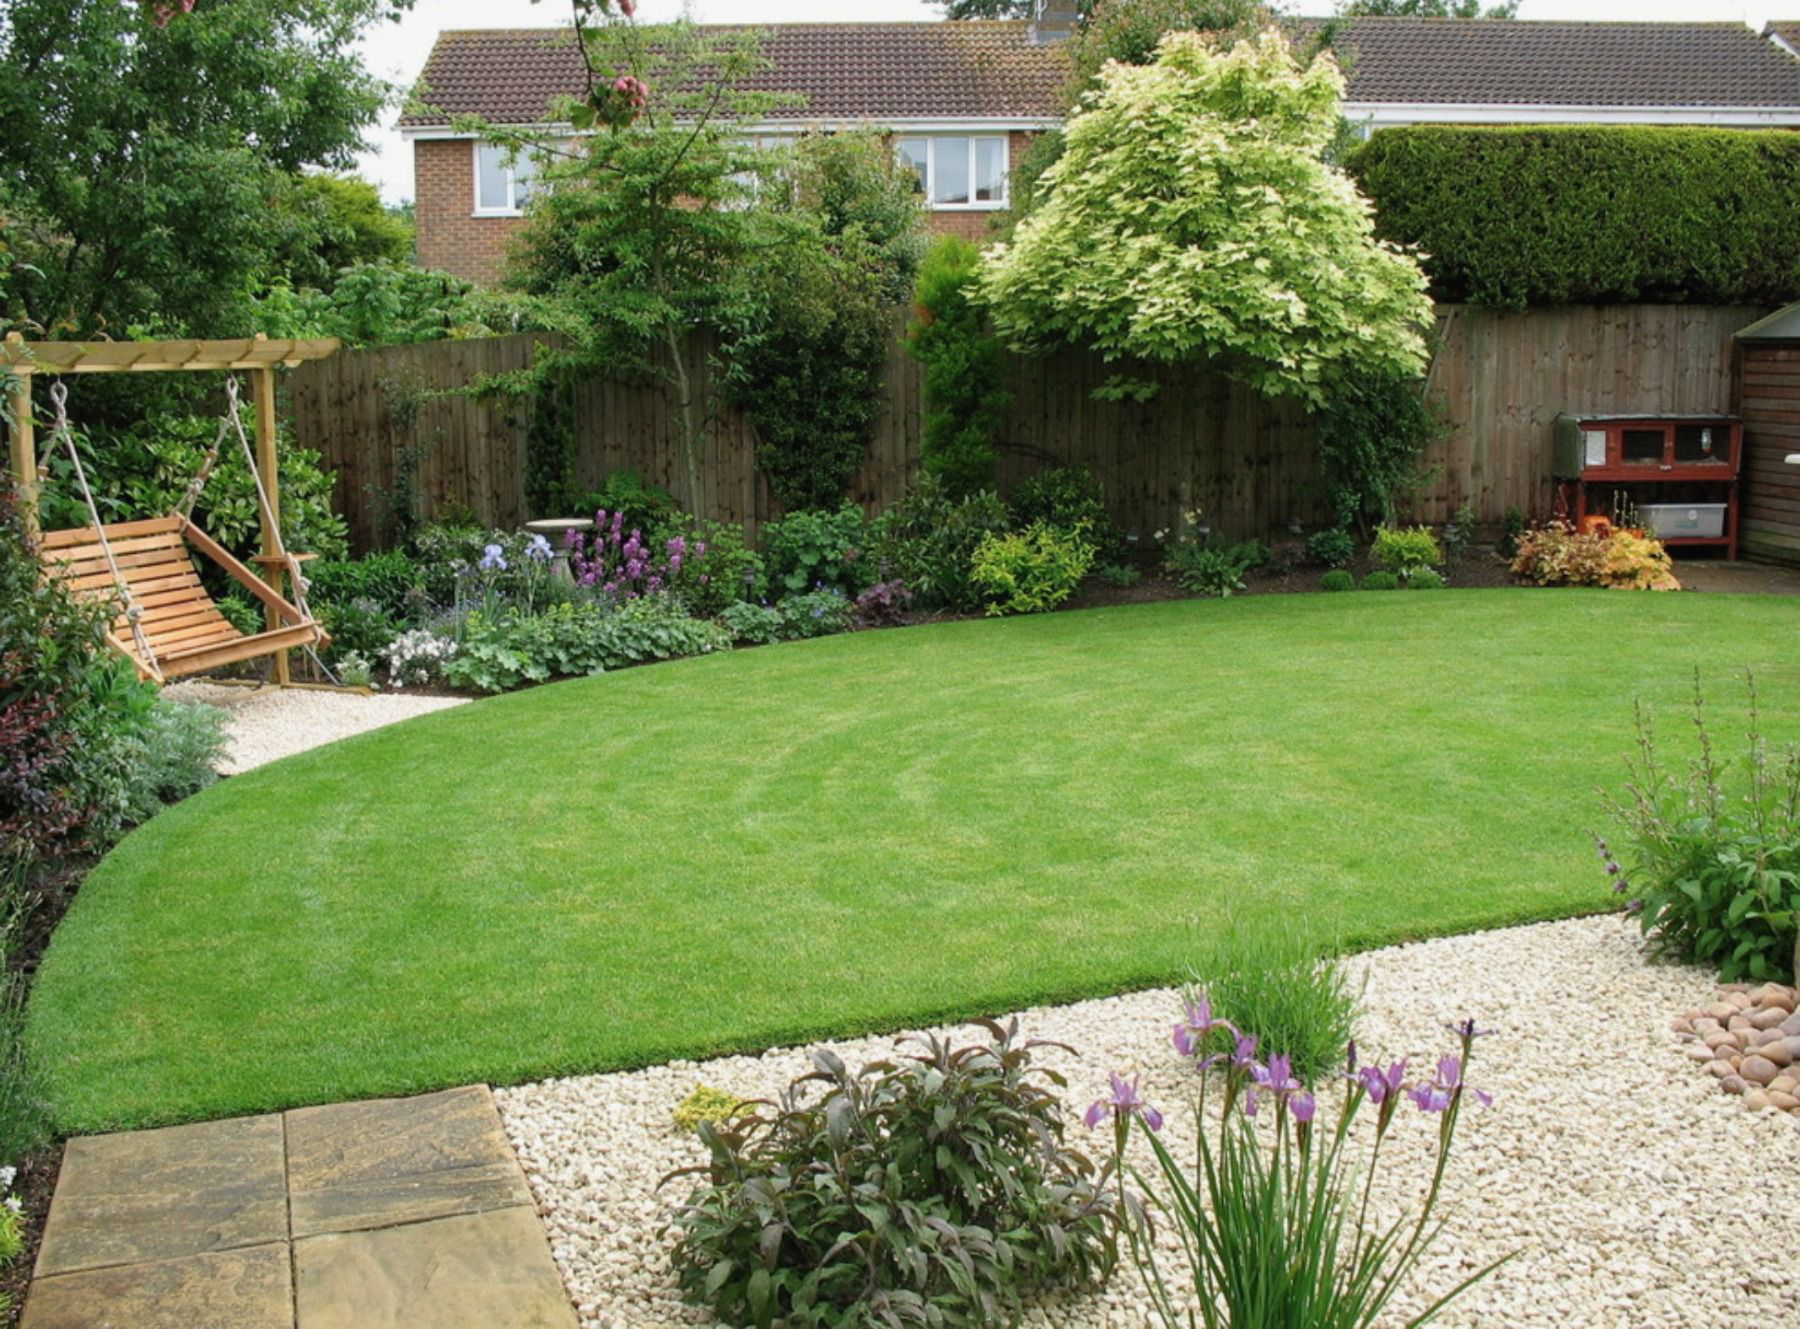 50 Backyard Landscaping Ideas with regard to 12 Smart Concepts of How to Upgrade Backyard Landscape Images